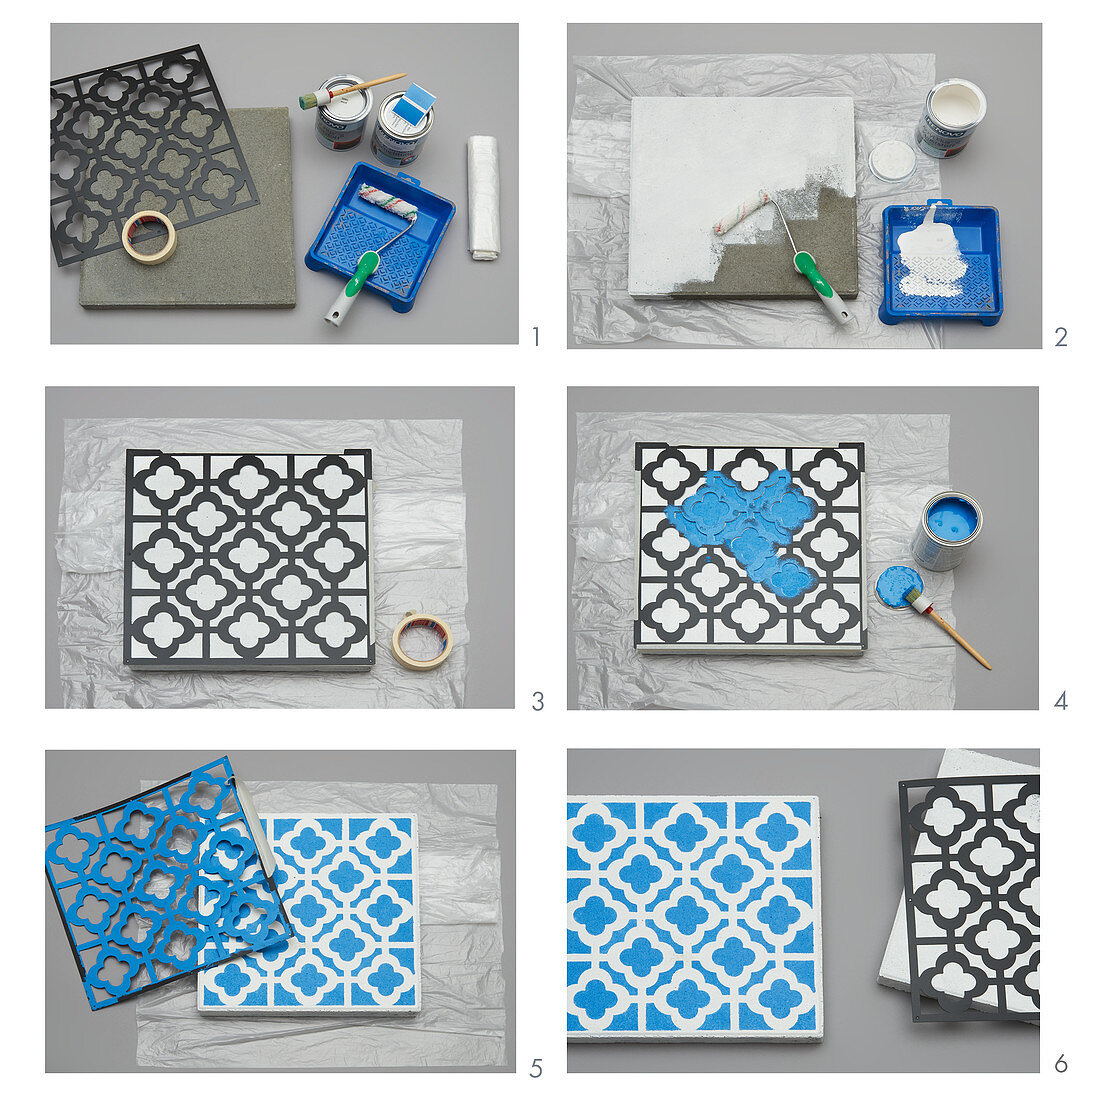 Instructions for painting concrete slab with ornamental pattern